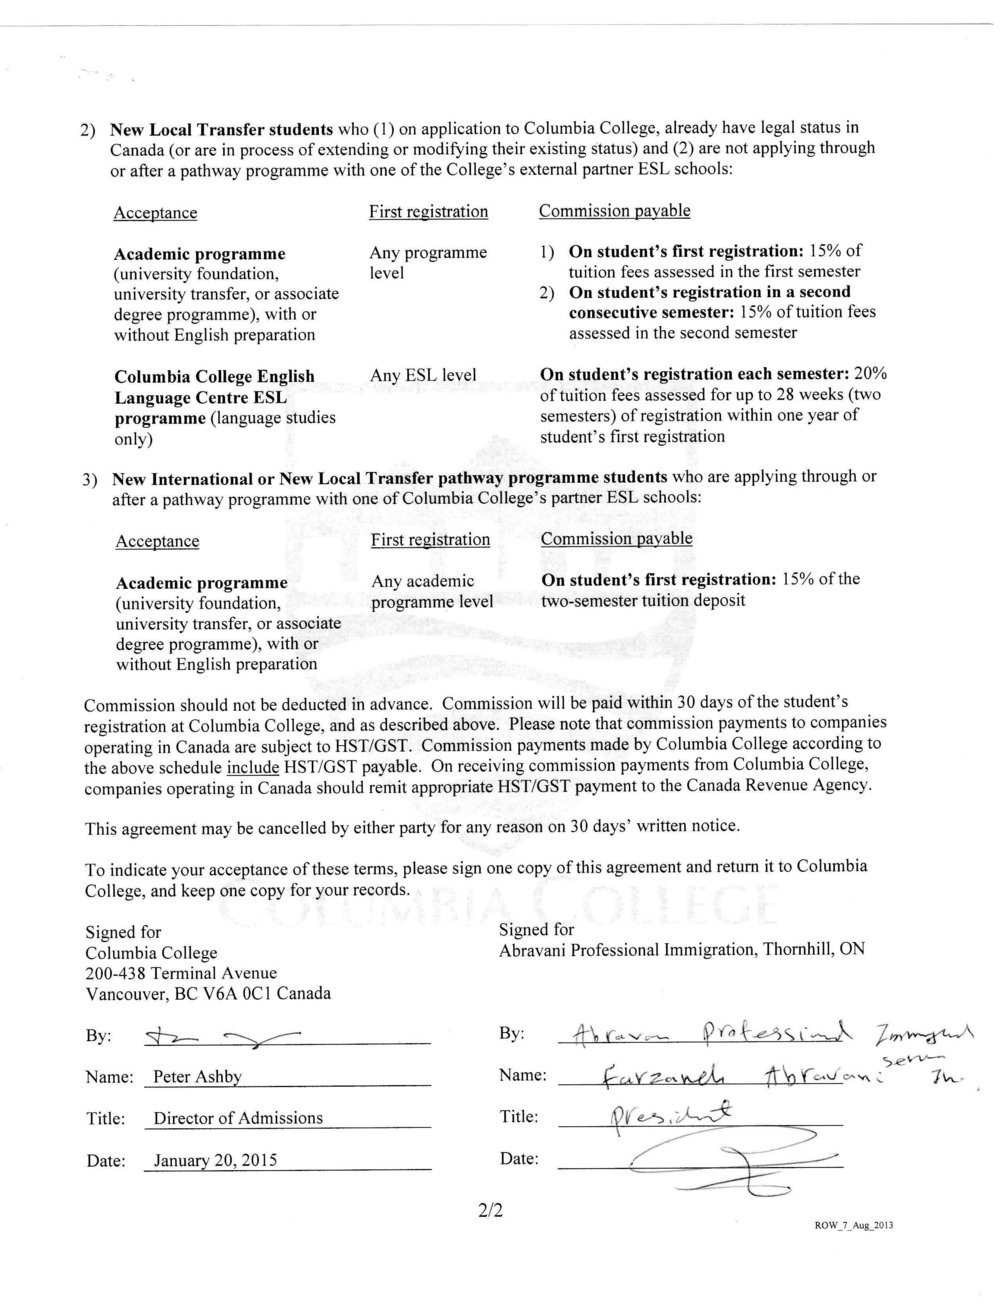 Agent certiifcate_Page_09.jpg